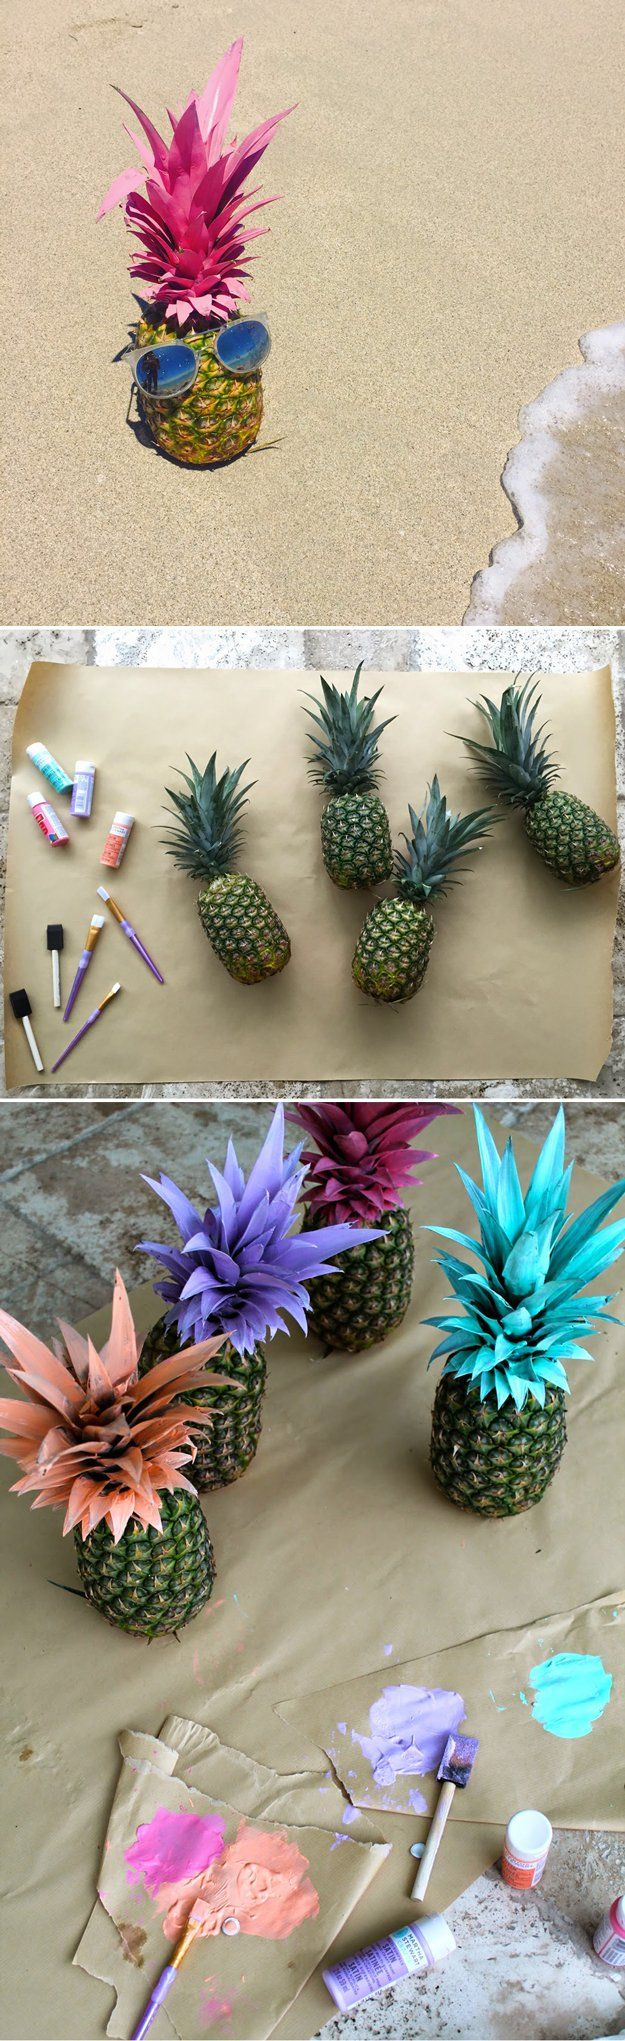 262 best images about tiki party on pinterest tropical for Cool beach decor